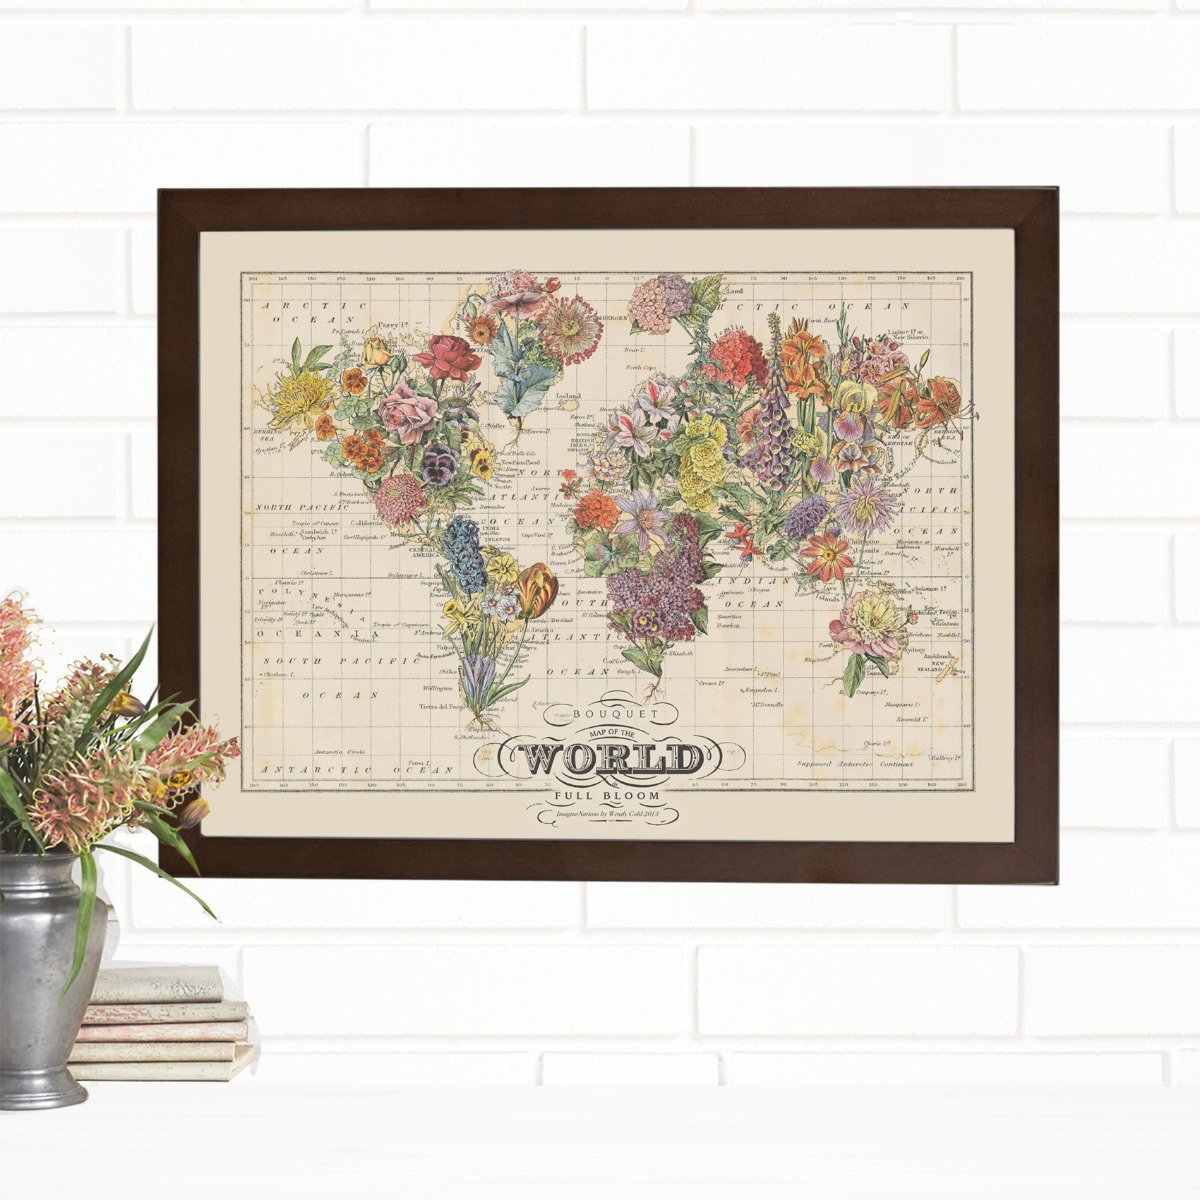 Bouquet Map of the World Vintage Wall Art by Wendy Gold